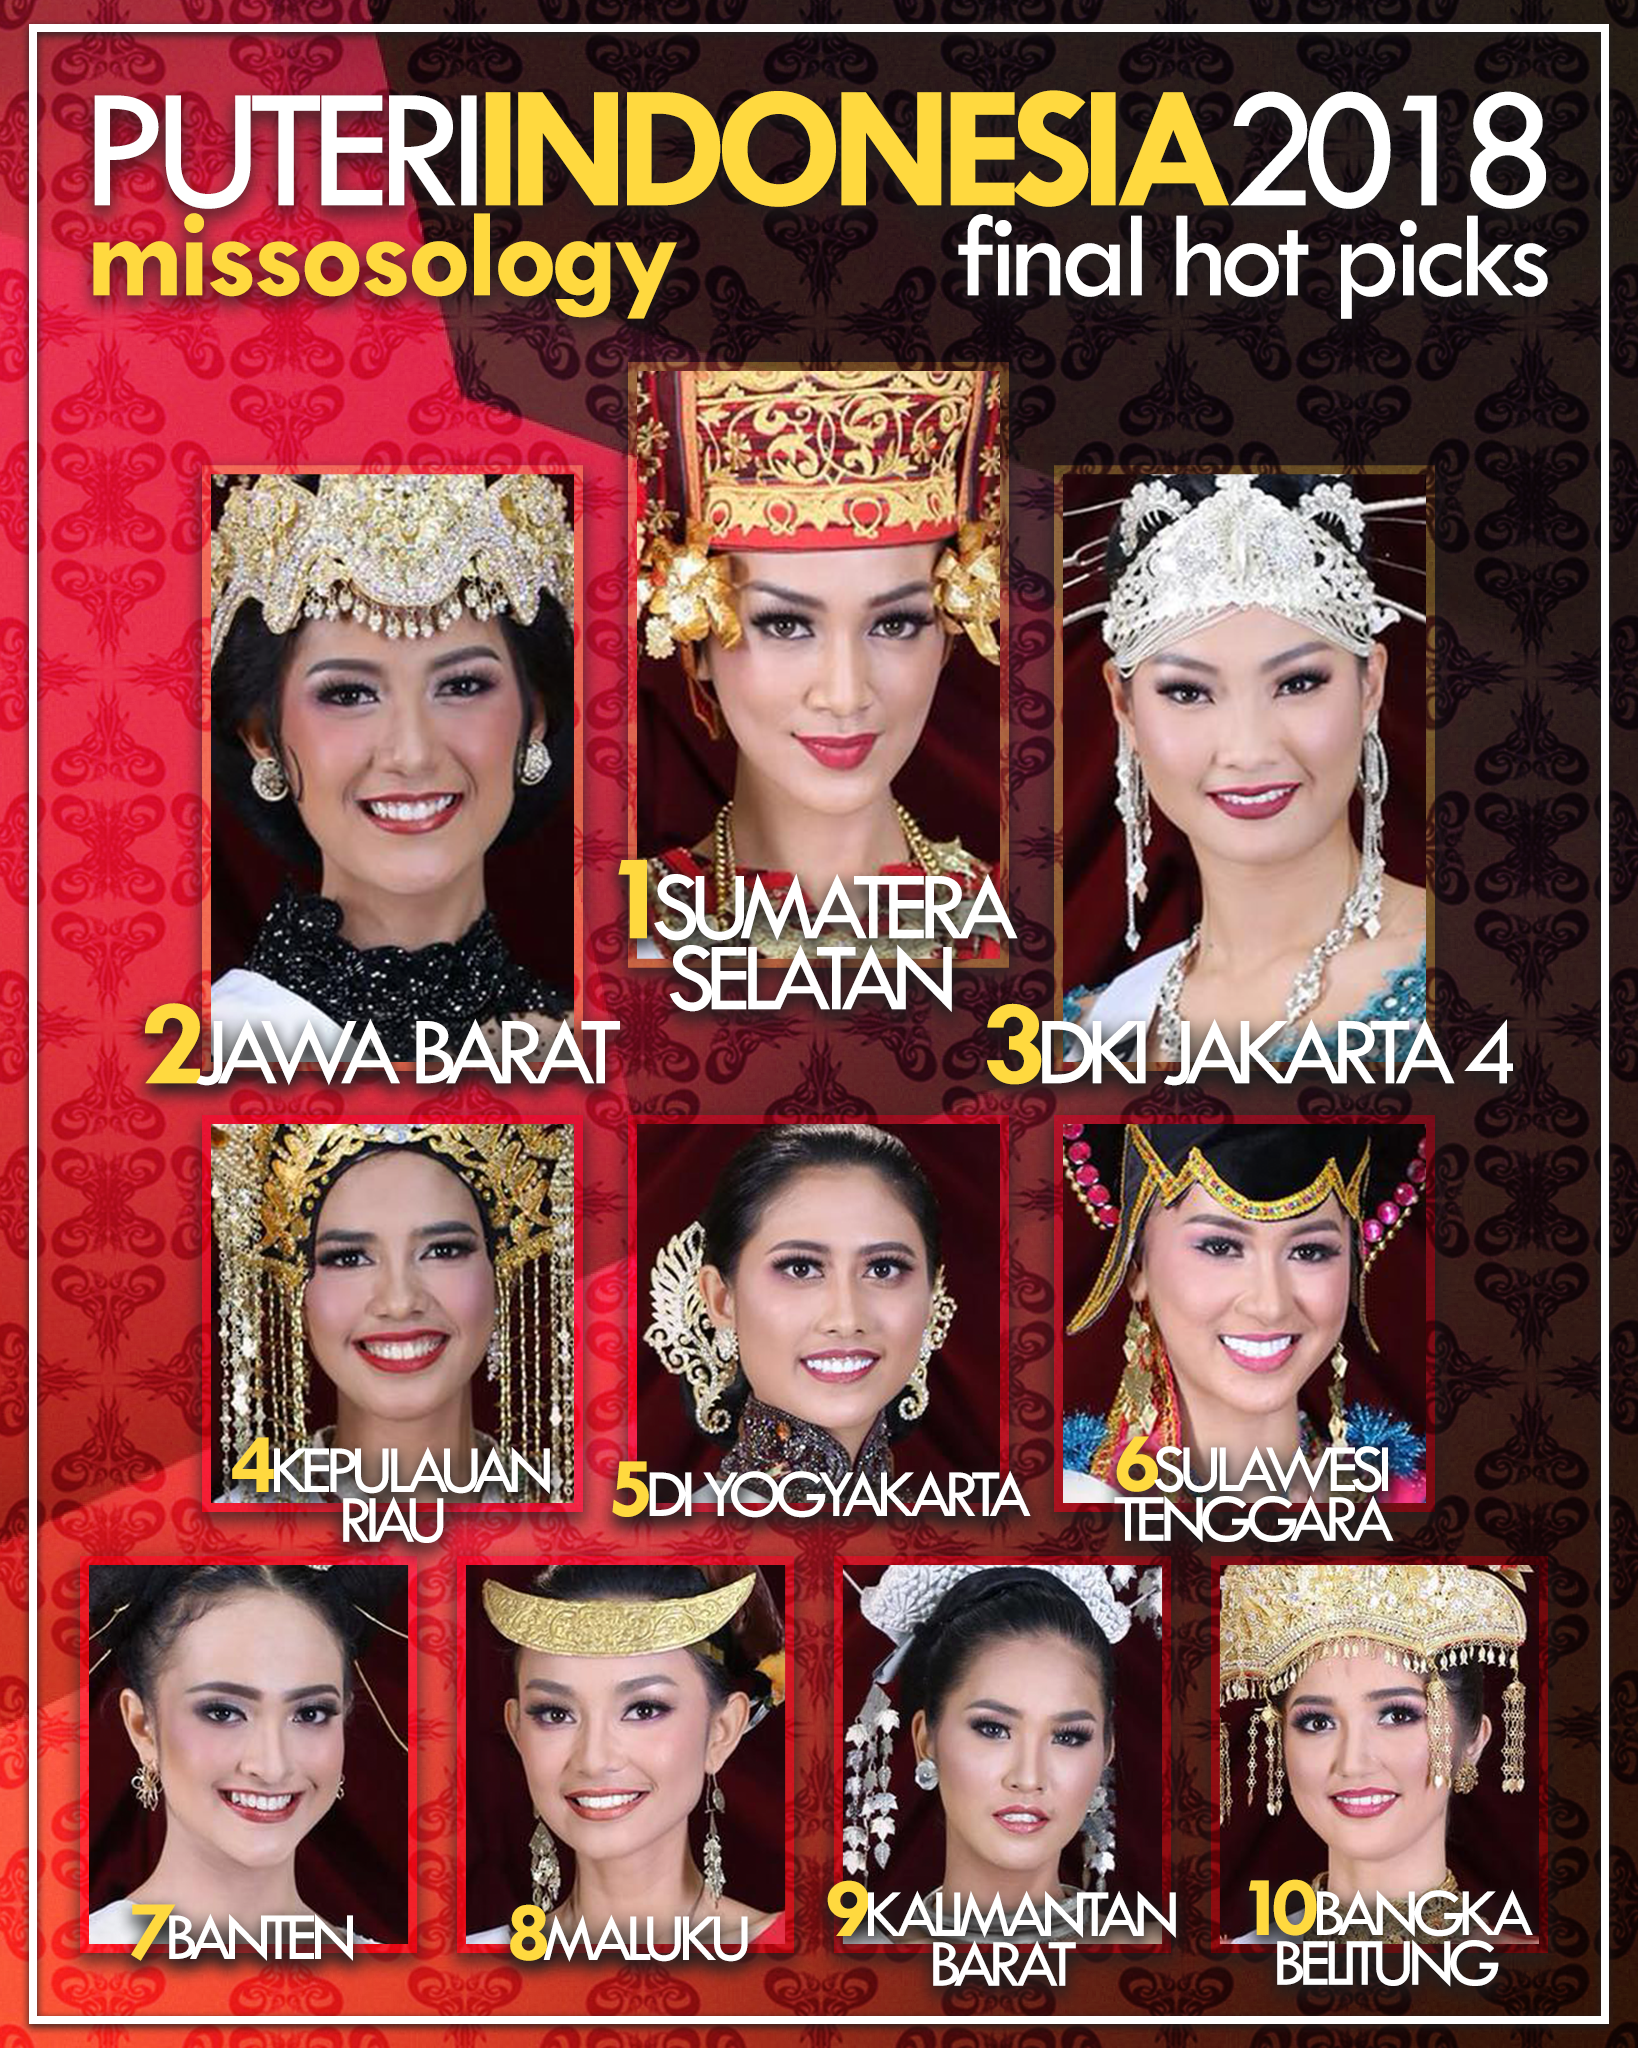 Puteri Indonesia 2018 Finall Hot Picks by Missosology